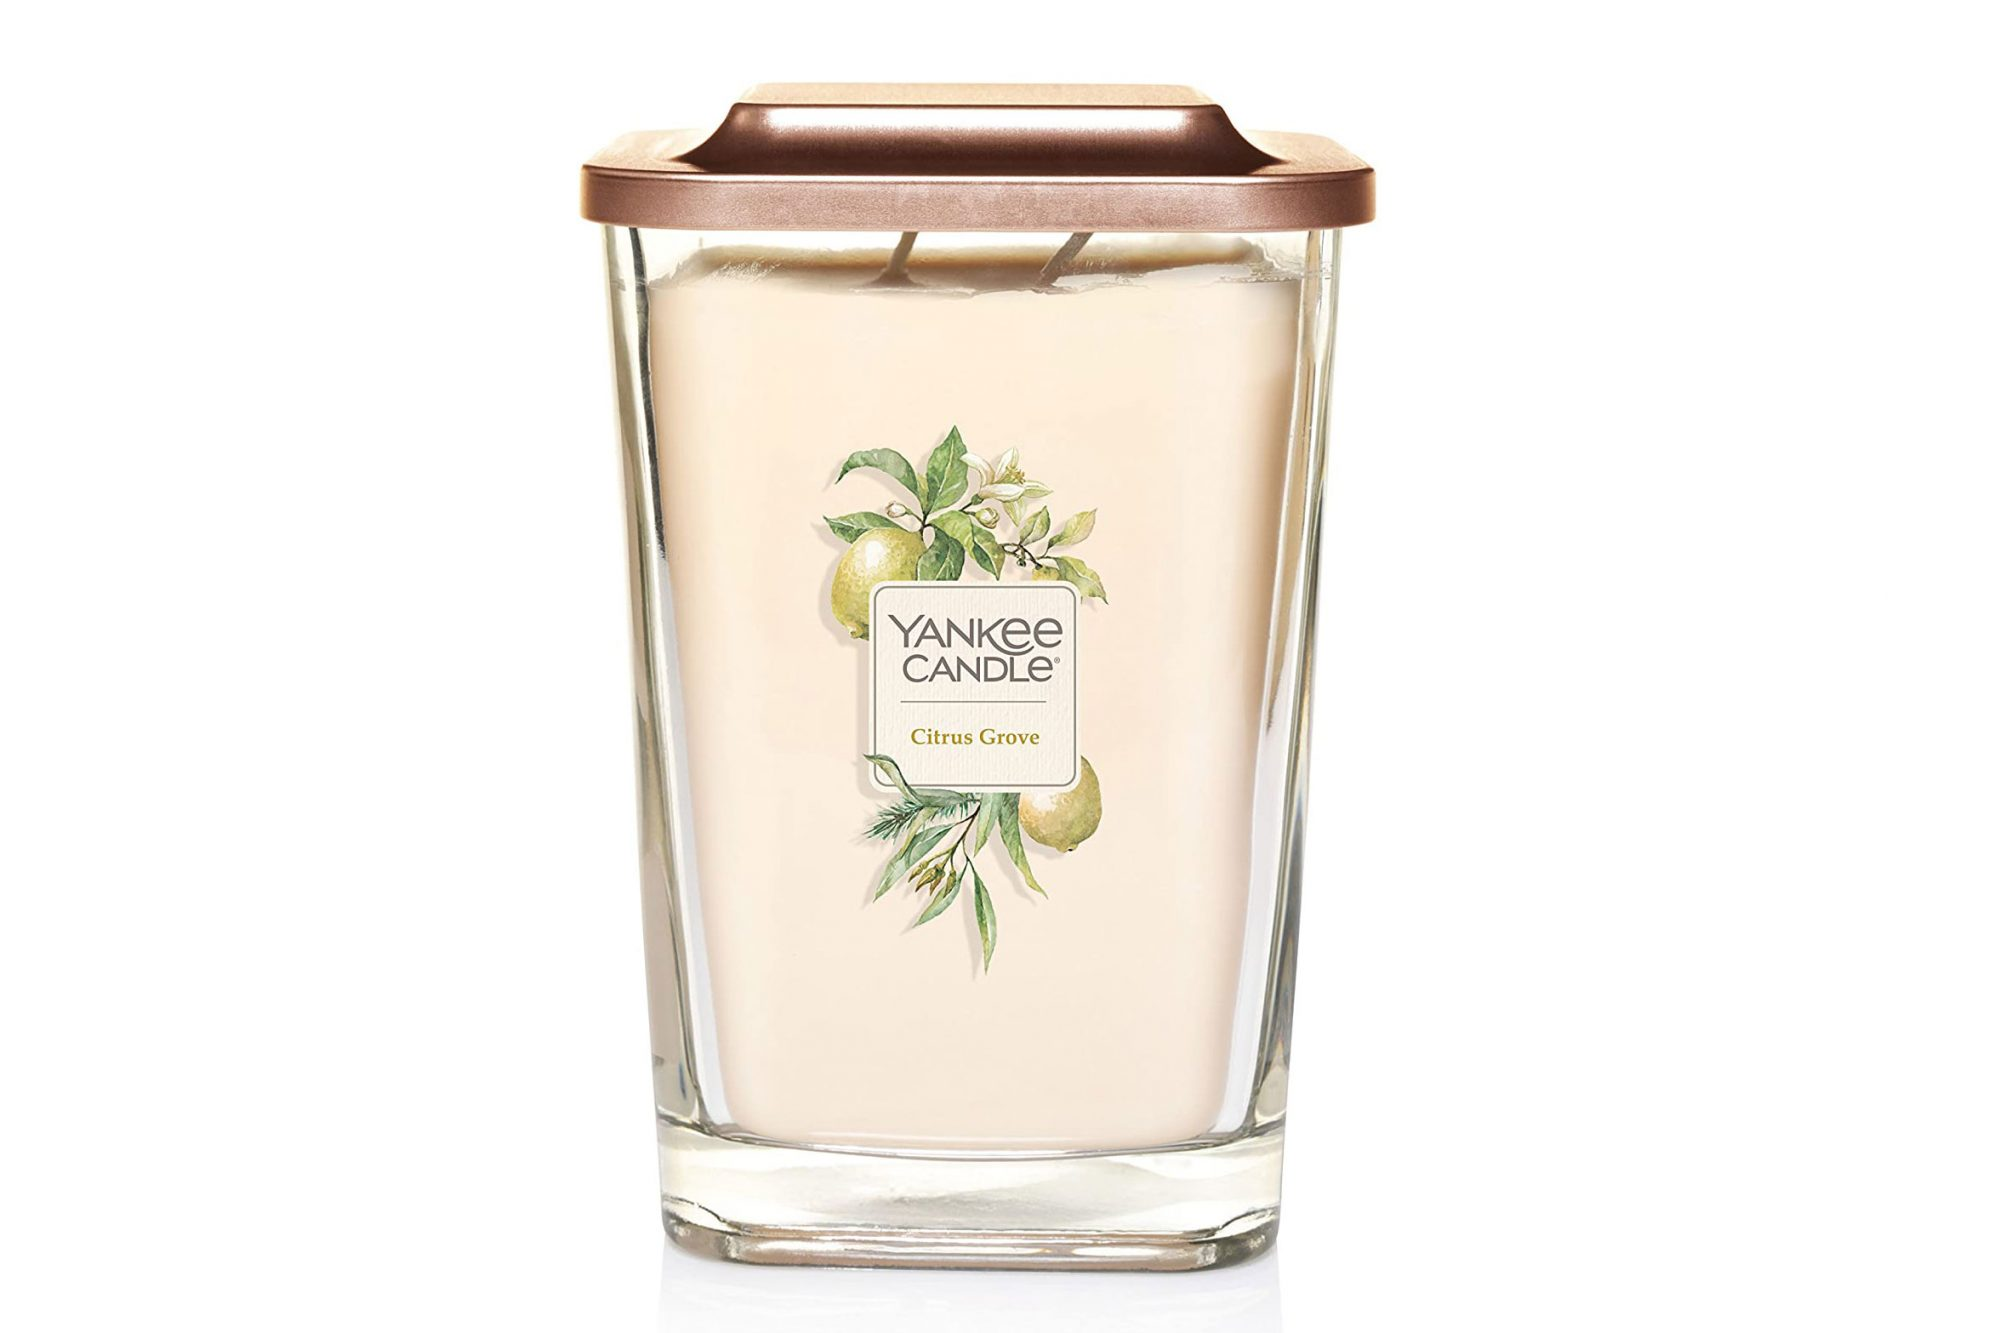 Yankee Candle Citrus Grove Candle